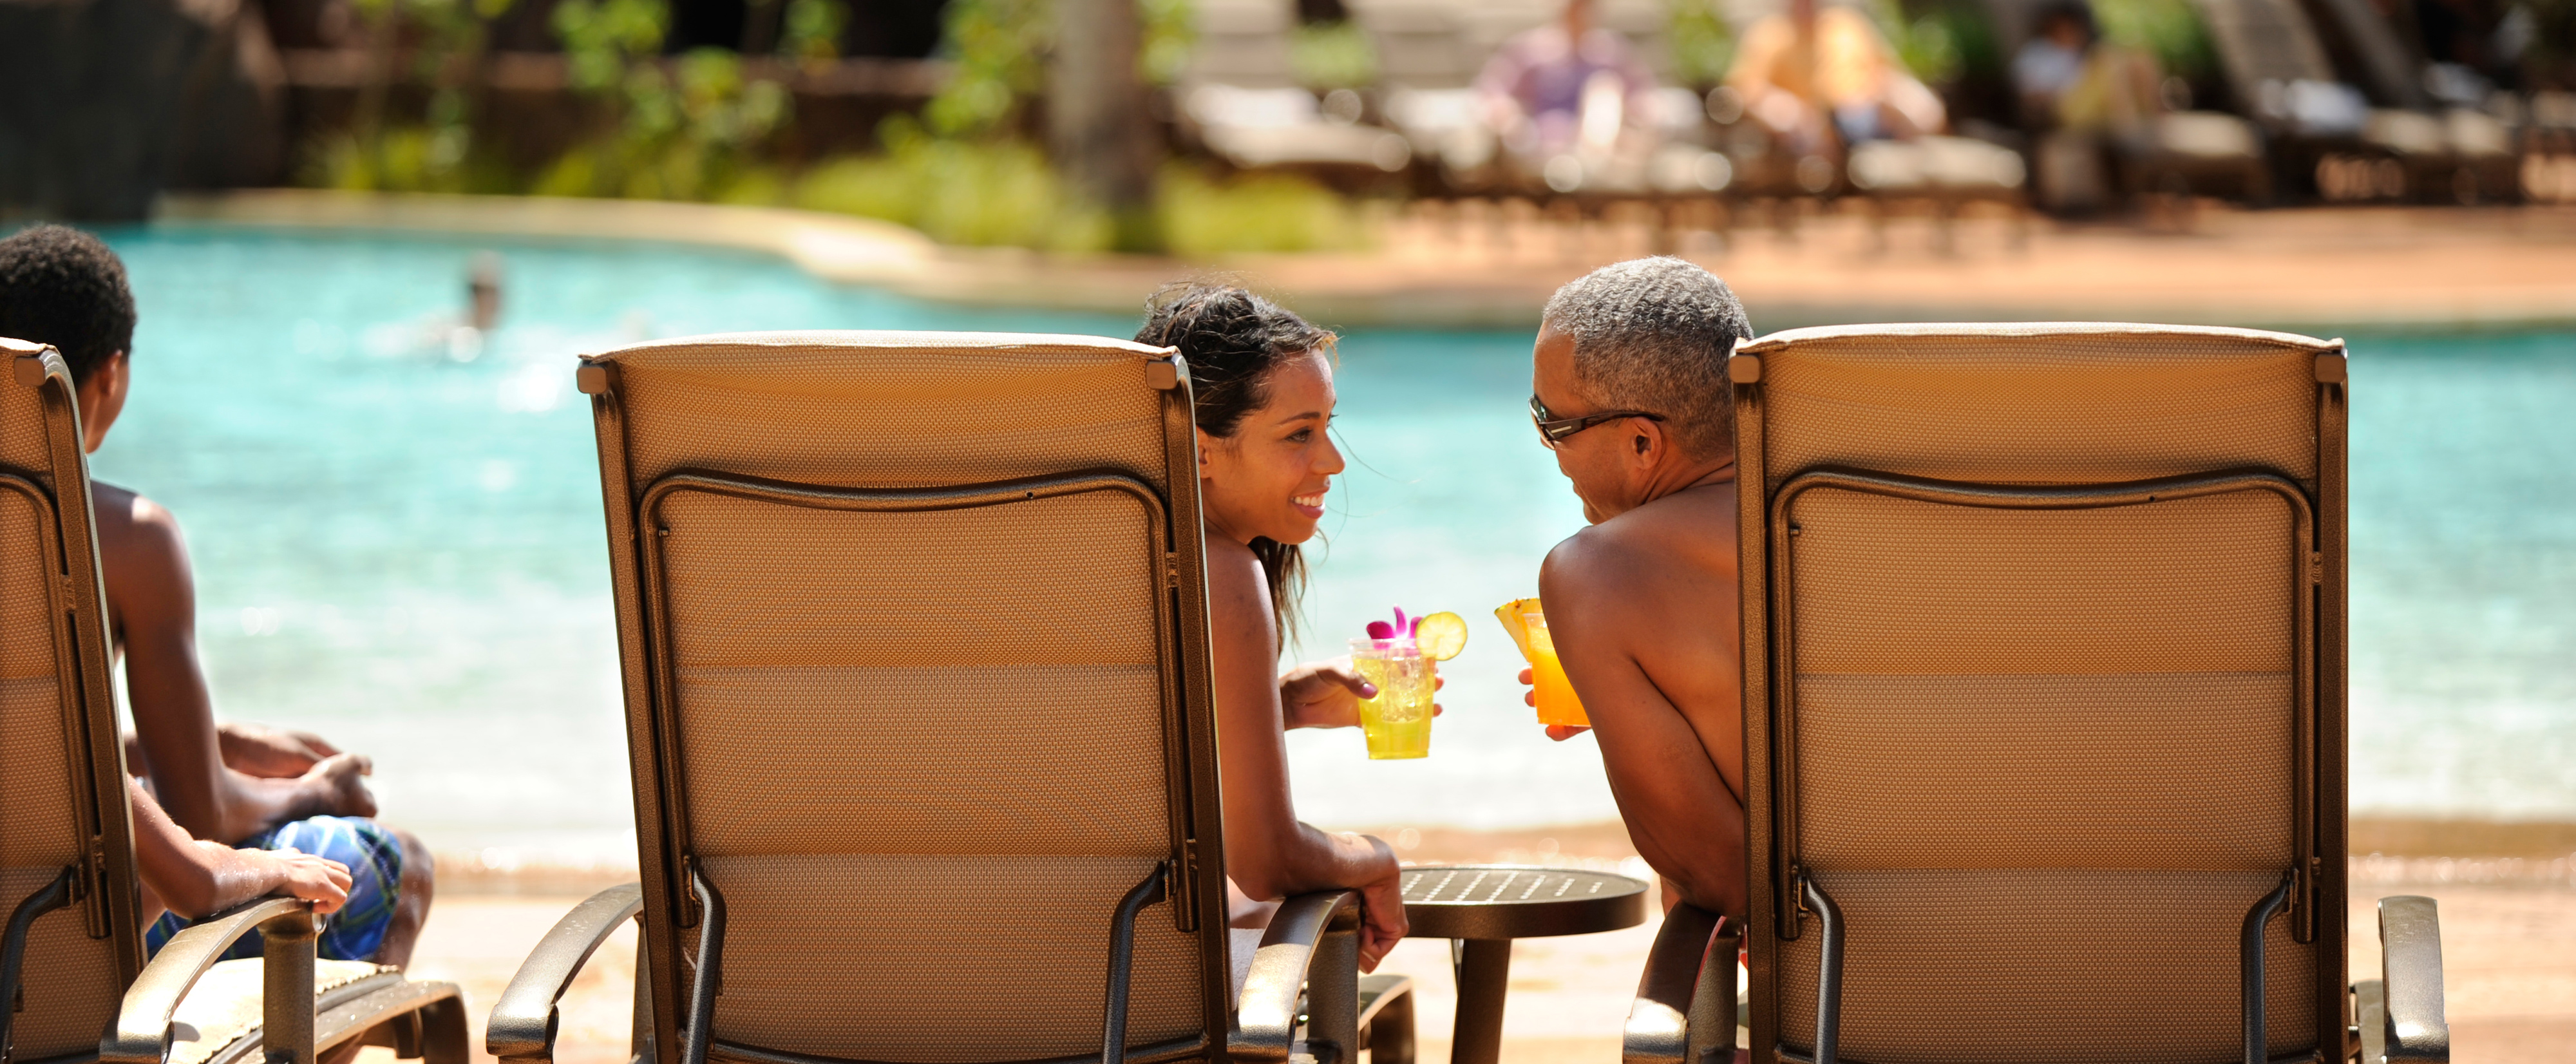 A woman and man sitting in lounge chairs lean in to talk to one another while holding drinks